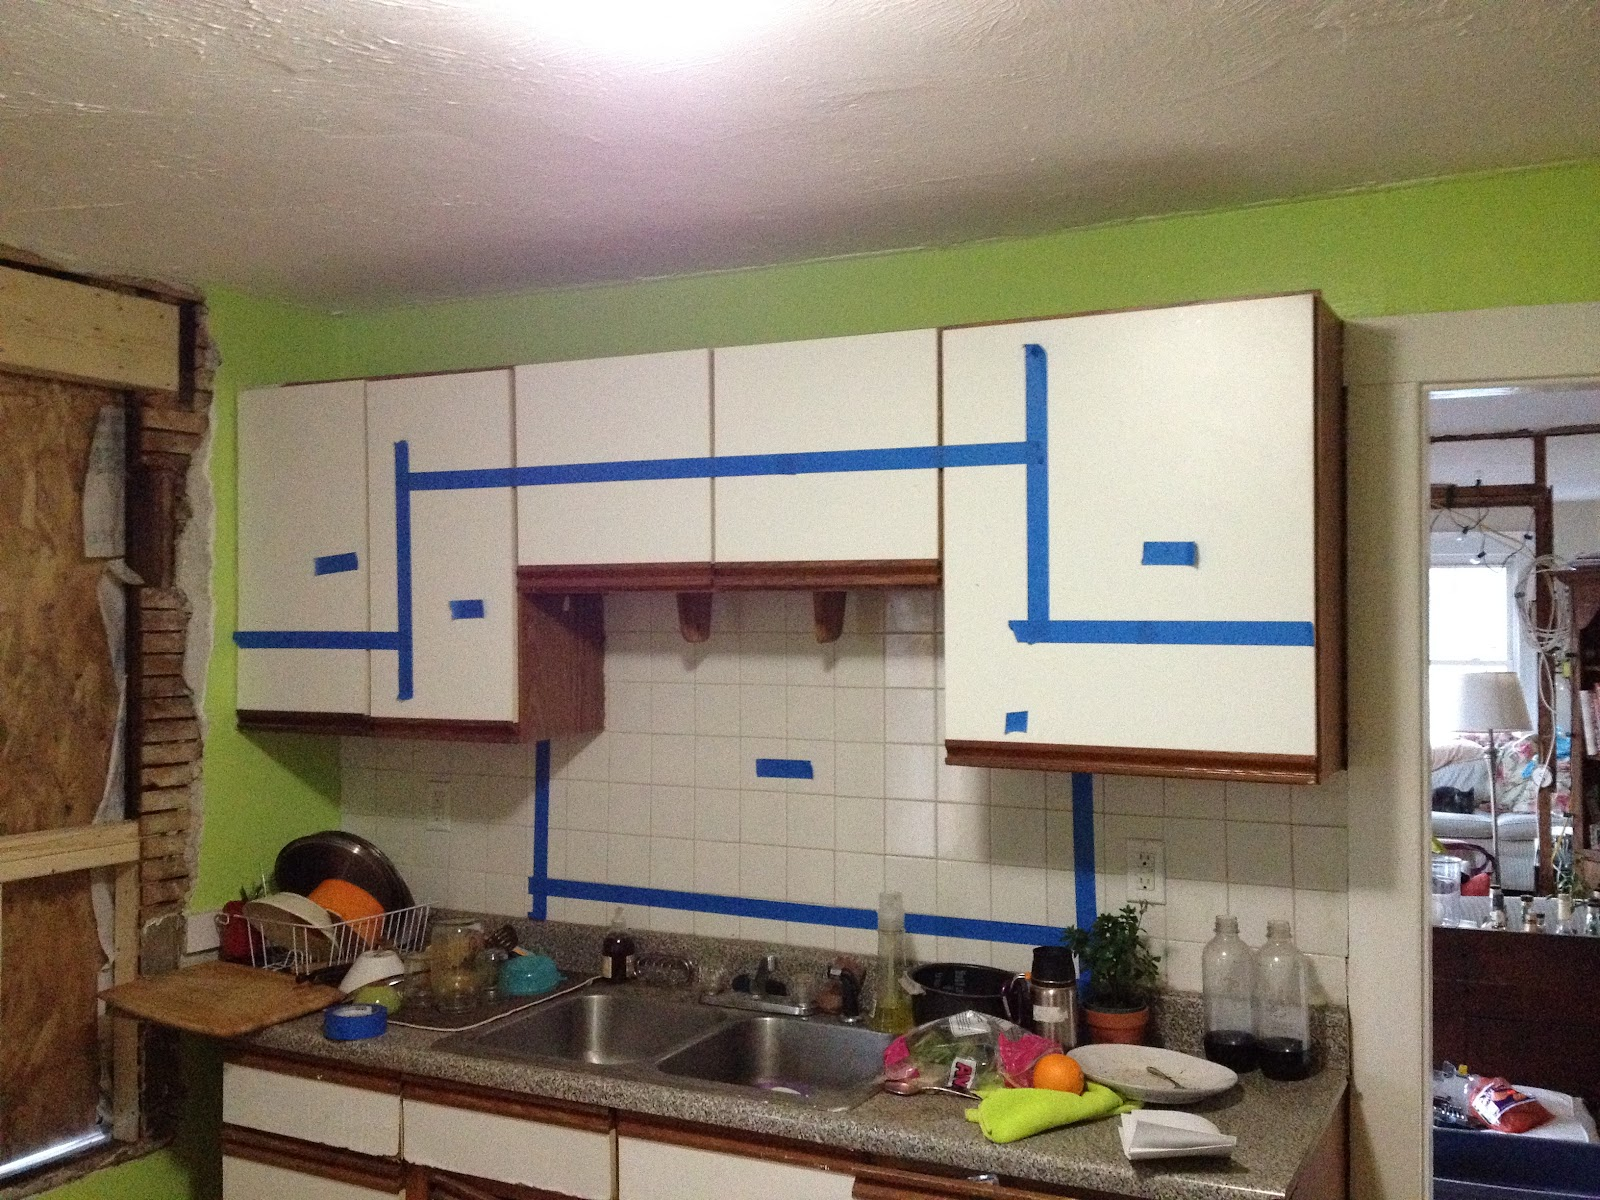 looking at possible kitchen cabinet and wall opening design